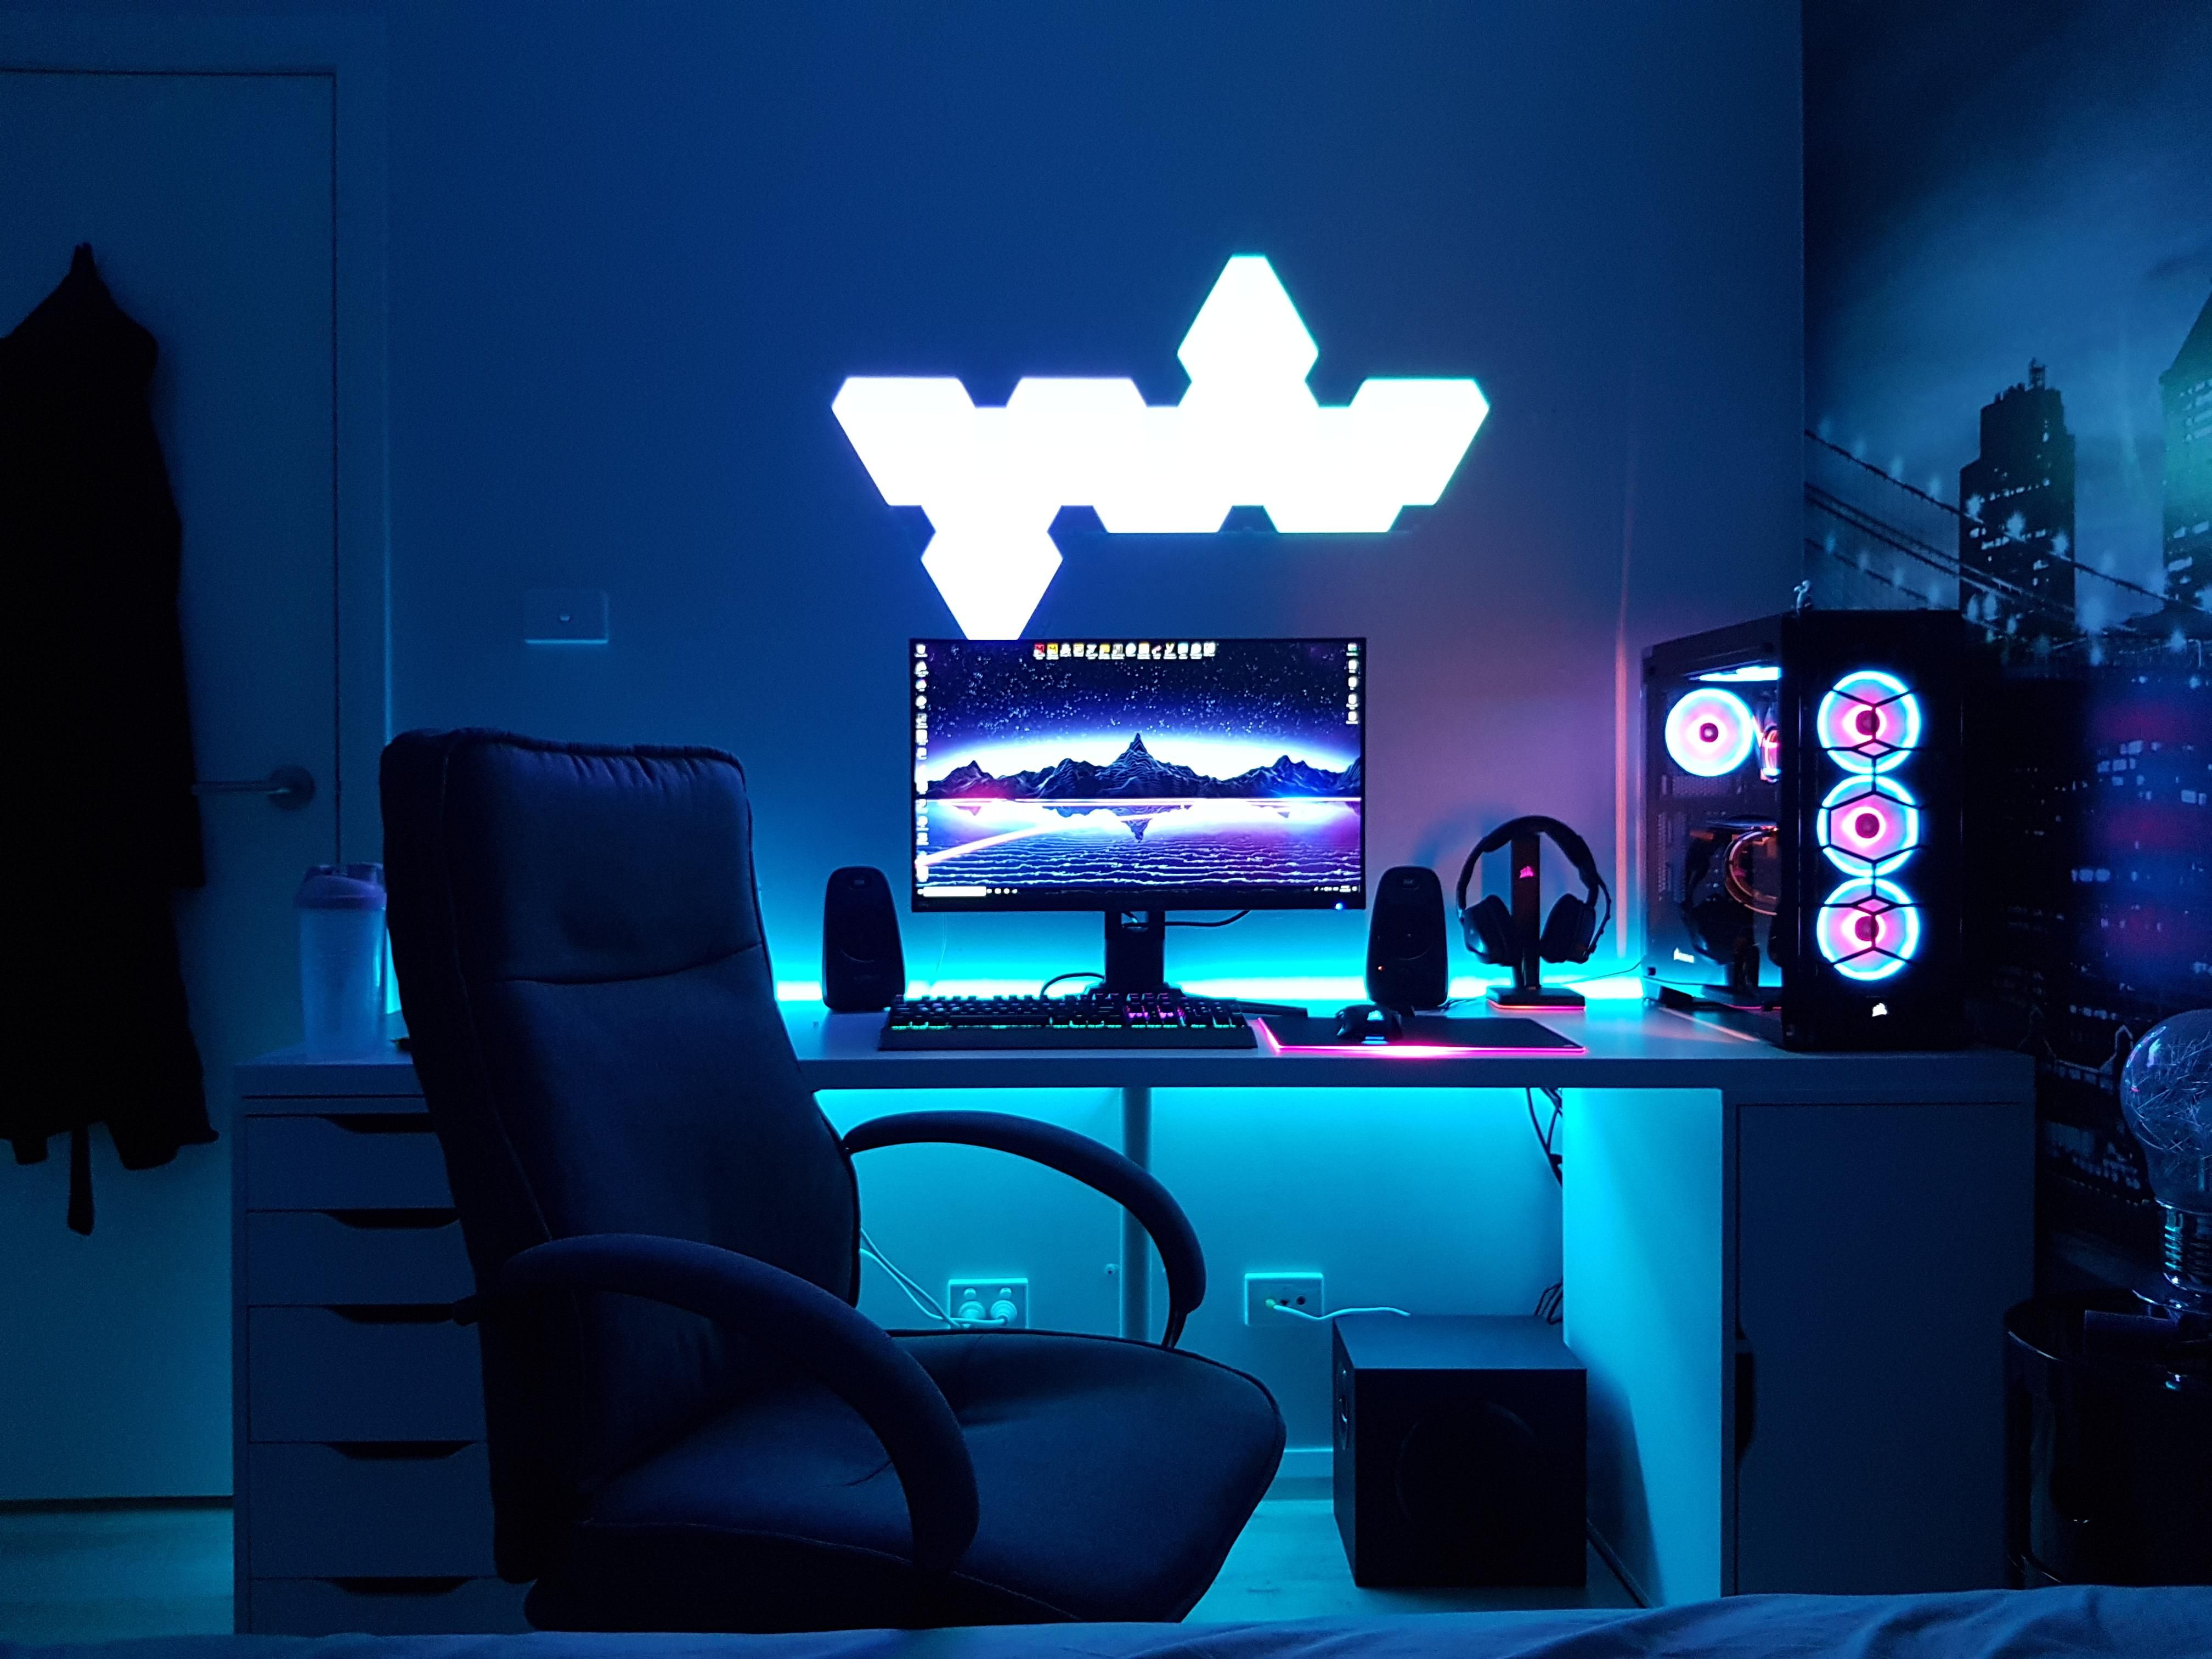 Https Ift Tt 2iwbqui Me Some Of Them Fancy Nanoleafs Video Game Rooms Video Game Room Game Room